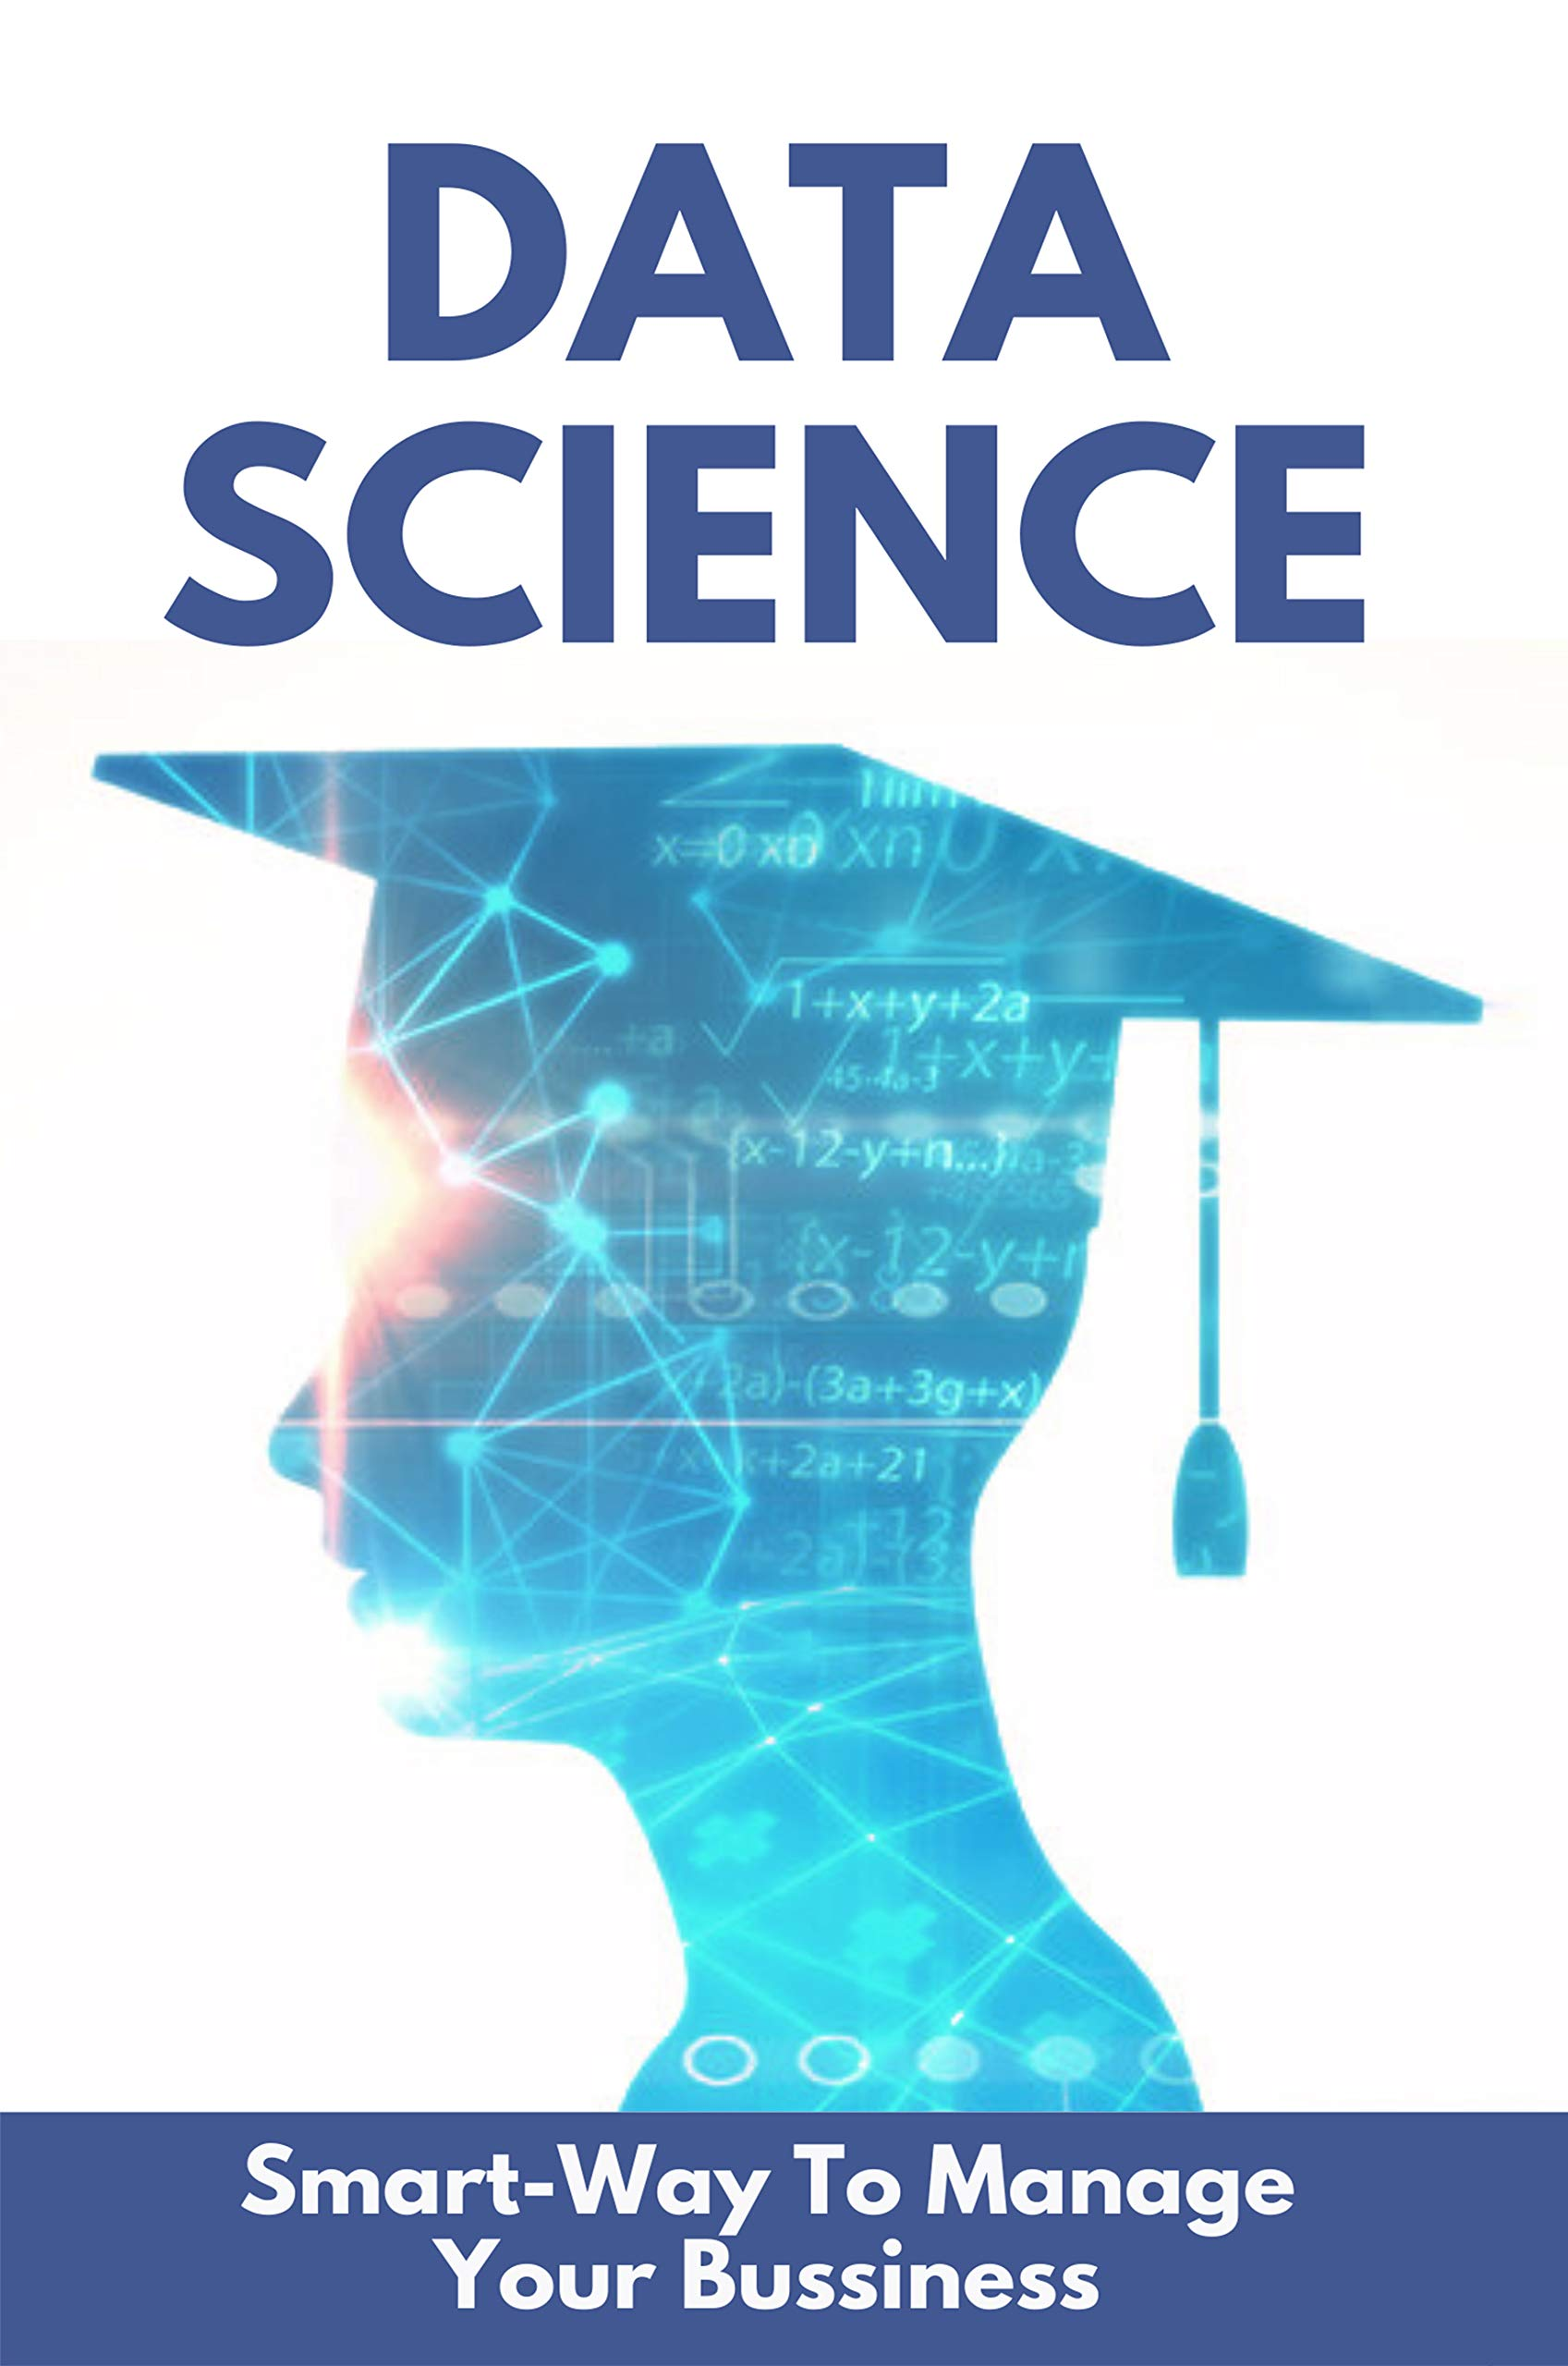 Data Science: Smart-Way To Manage Your Bussiness: Data Science Certification